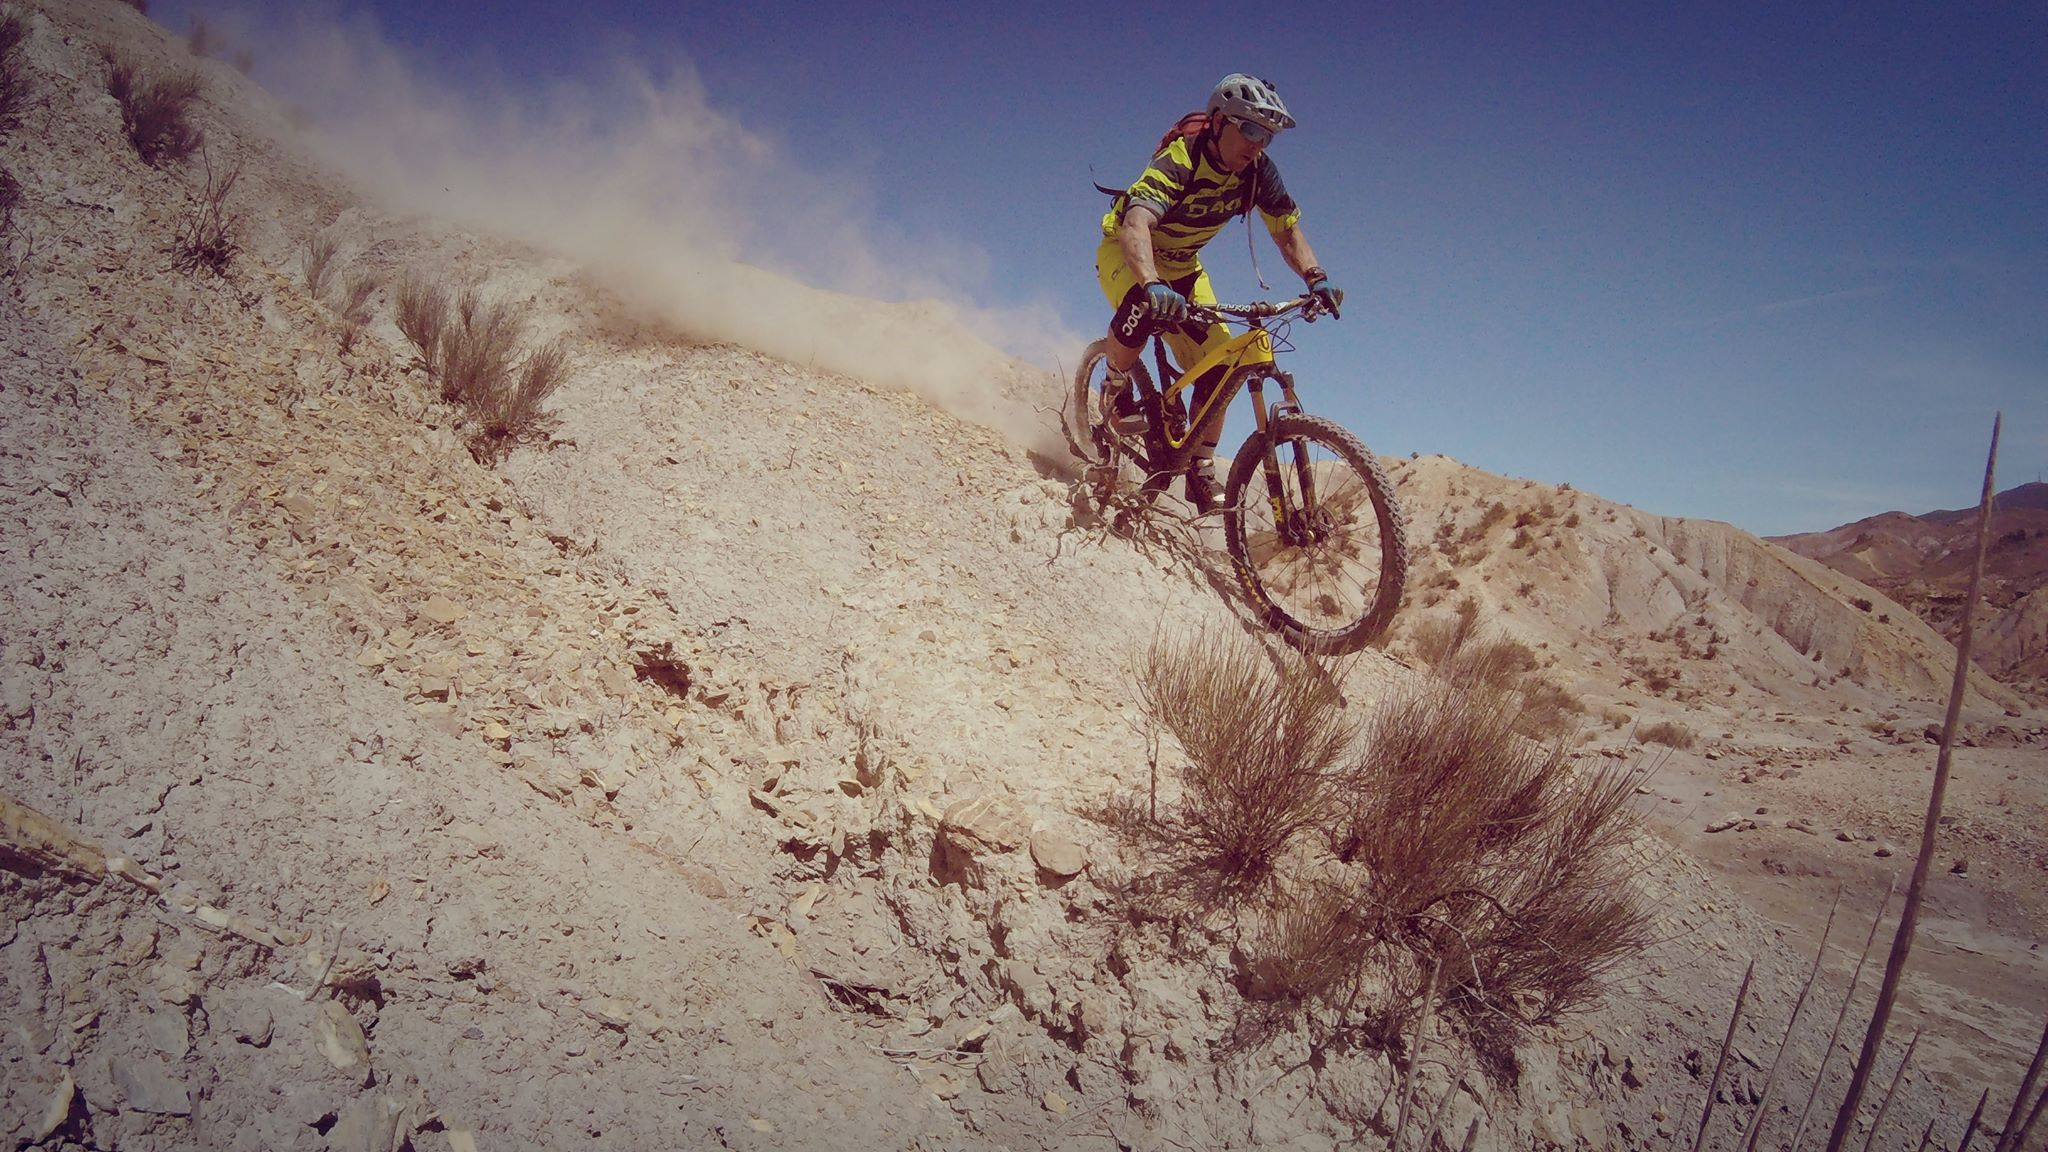 Gaspi charging downhill in Spain.